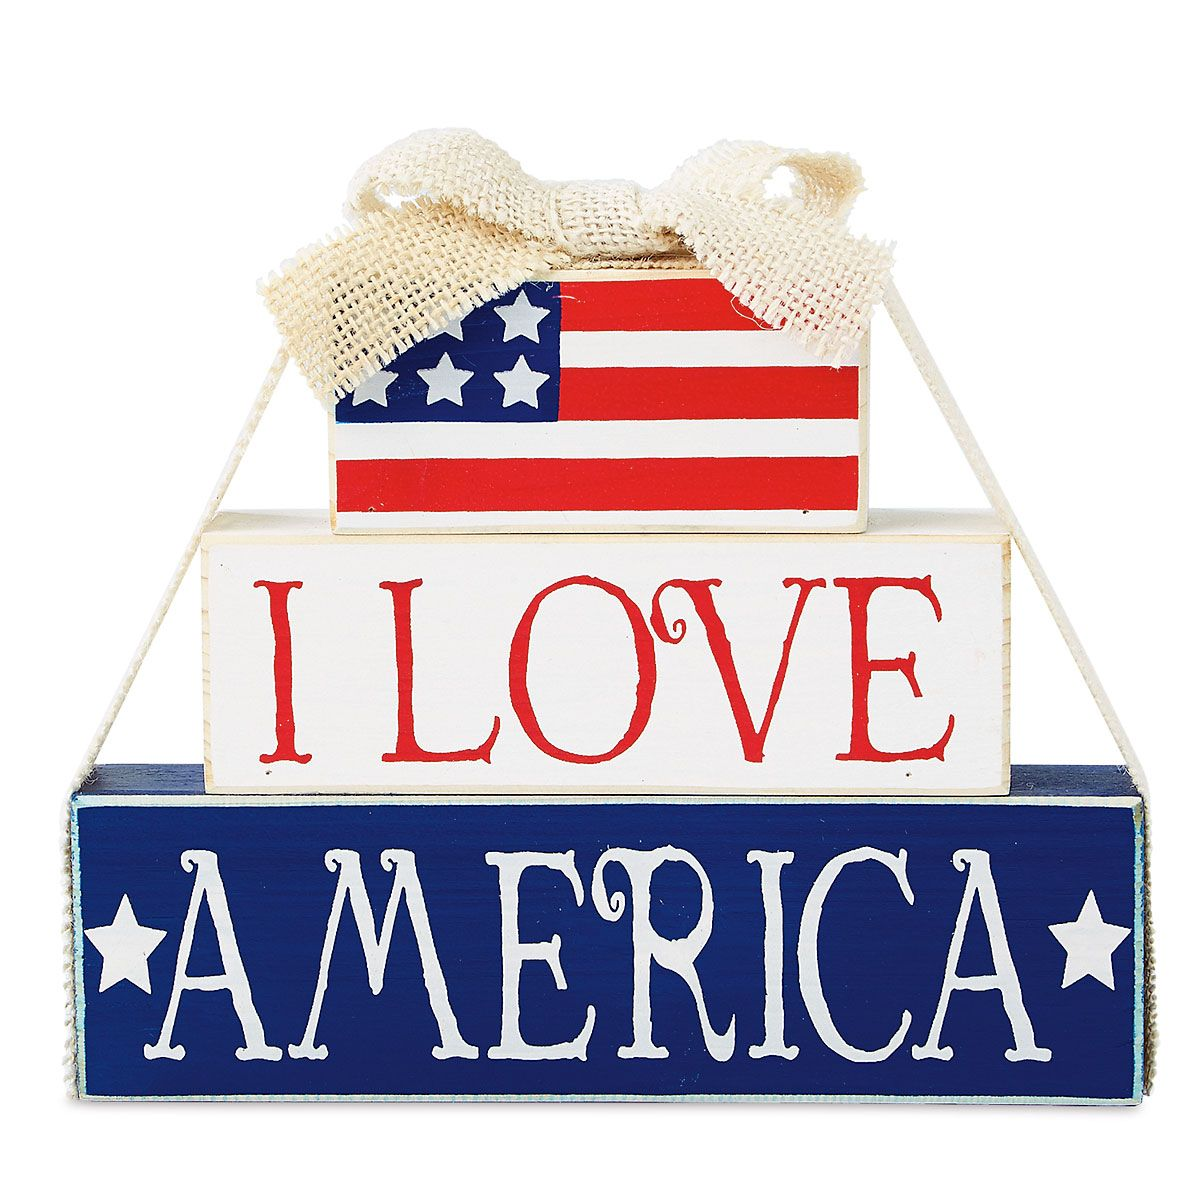 I Love America Wooden Decoration